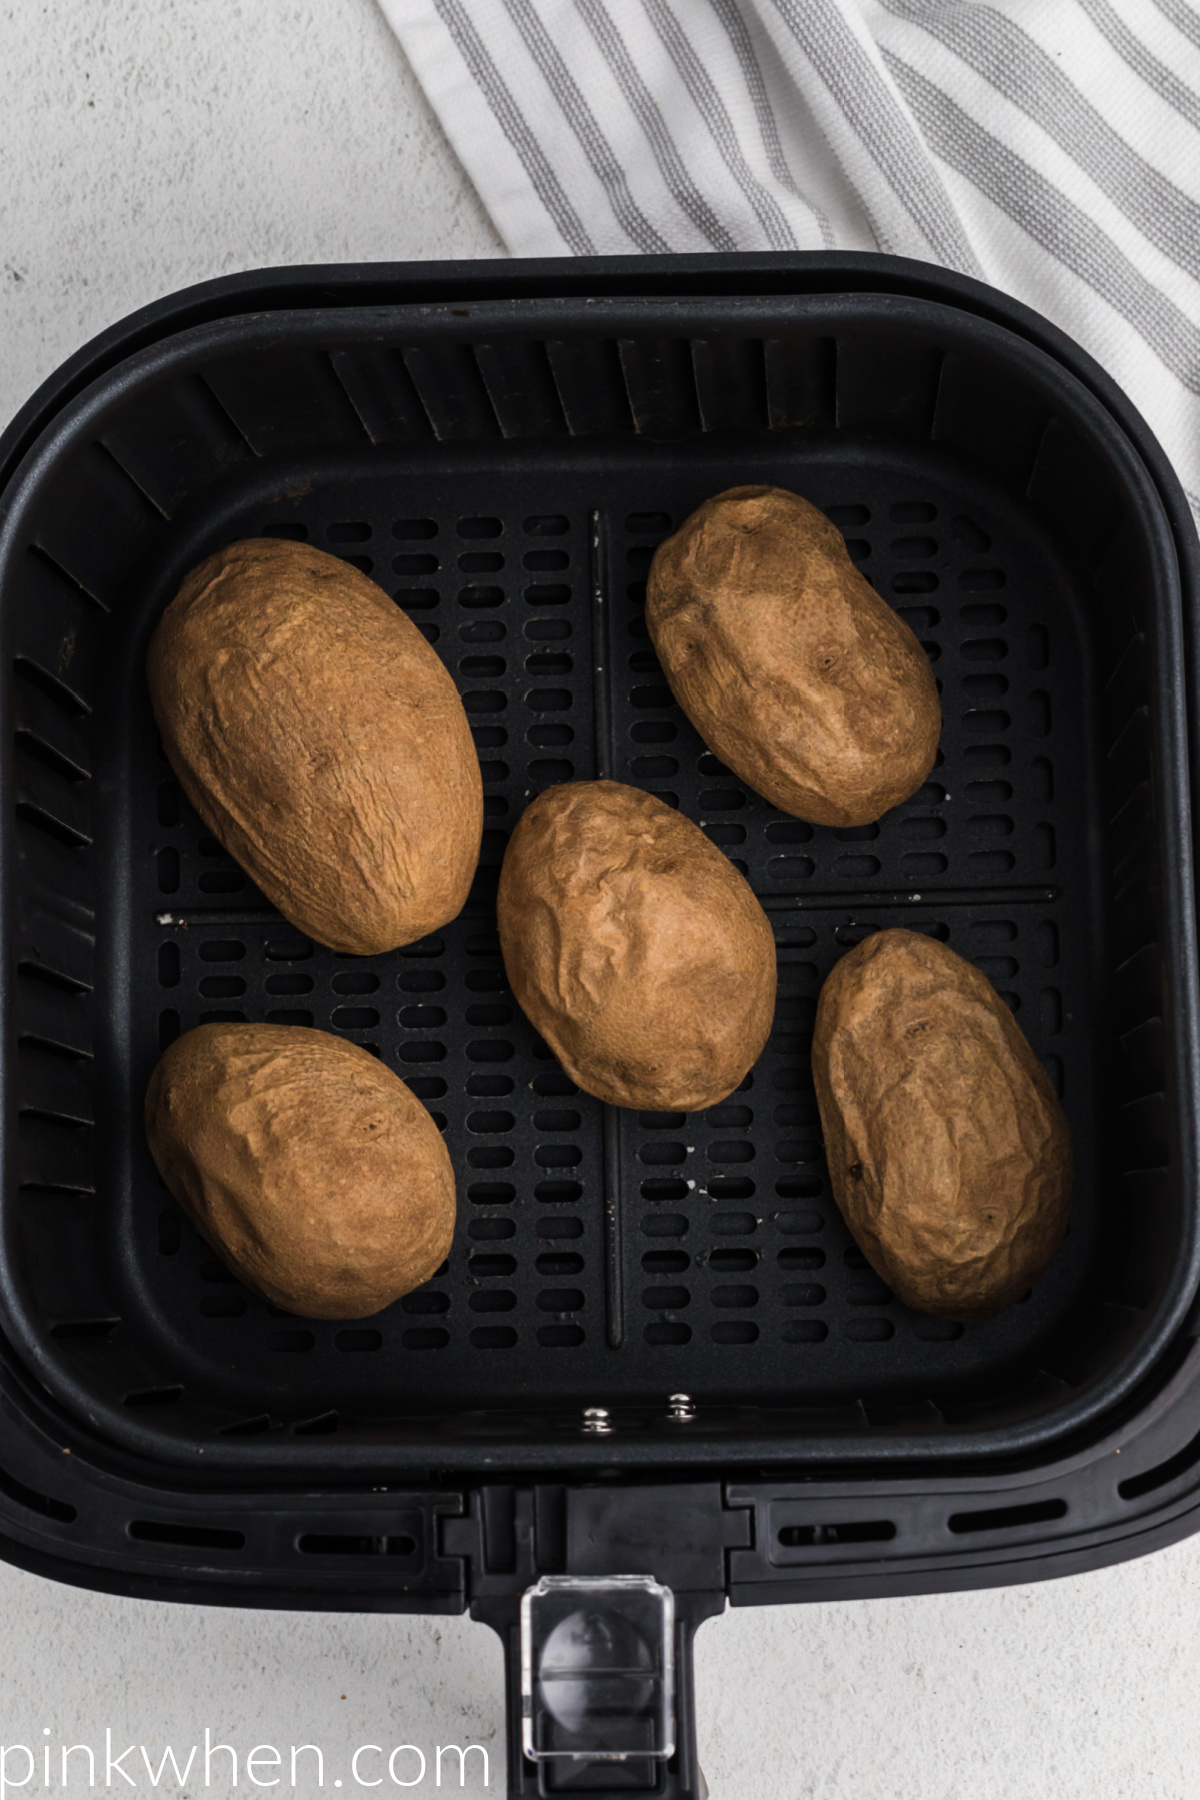 Cooked potatoes in the basket of the air fryer